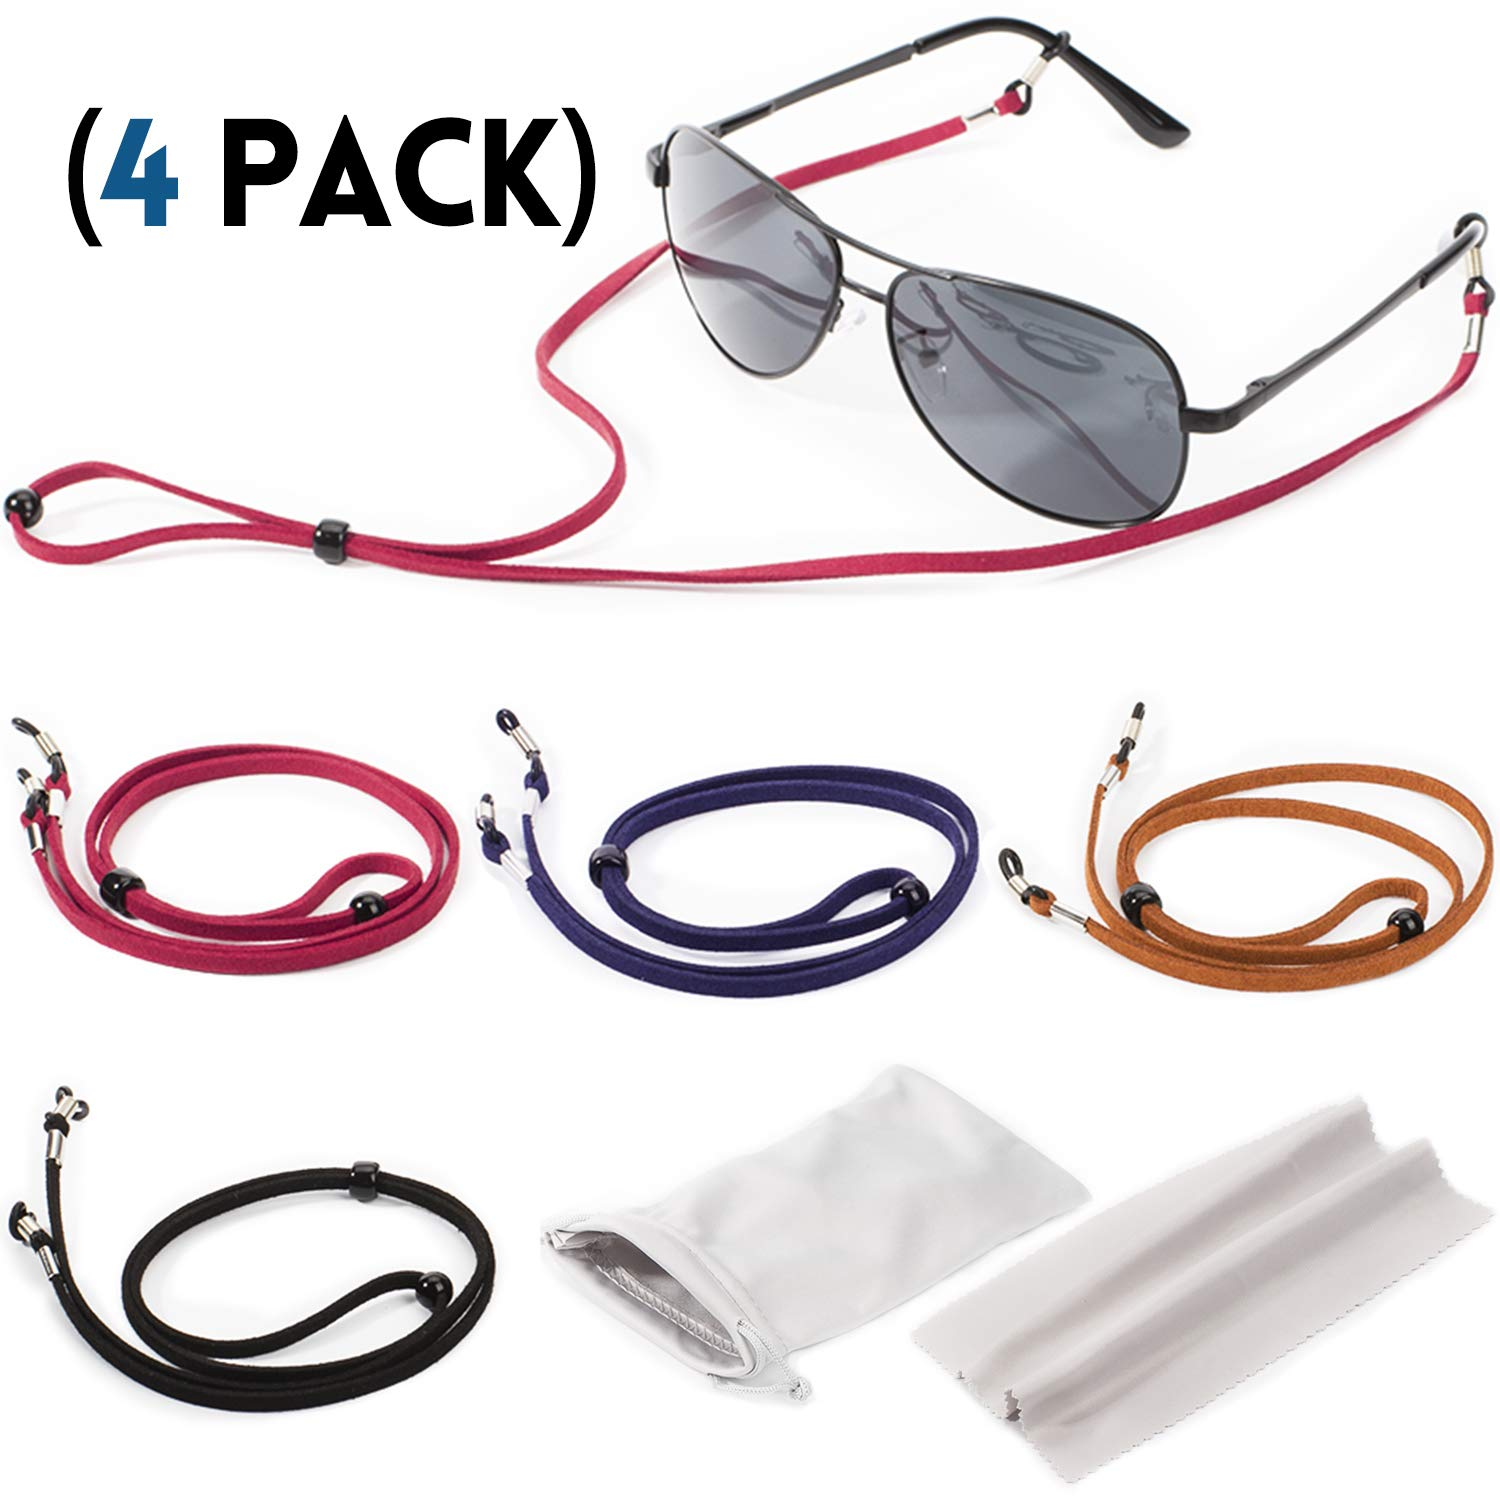 Eyeglasses Holder Strap Cord with Suede Leather Eyeglass Retainer with 2 Gifts Glasses Bag and Cloth DEZAMN